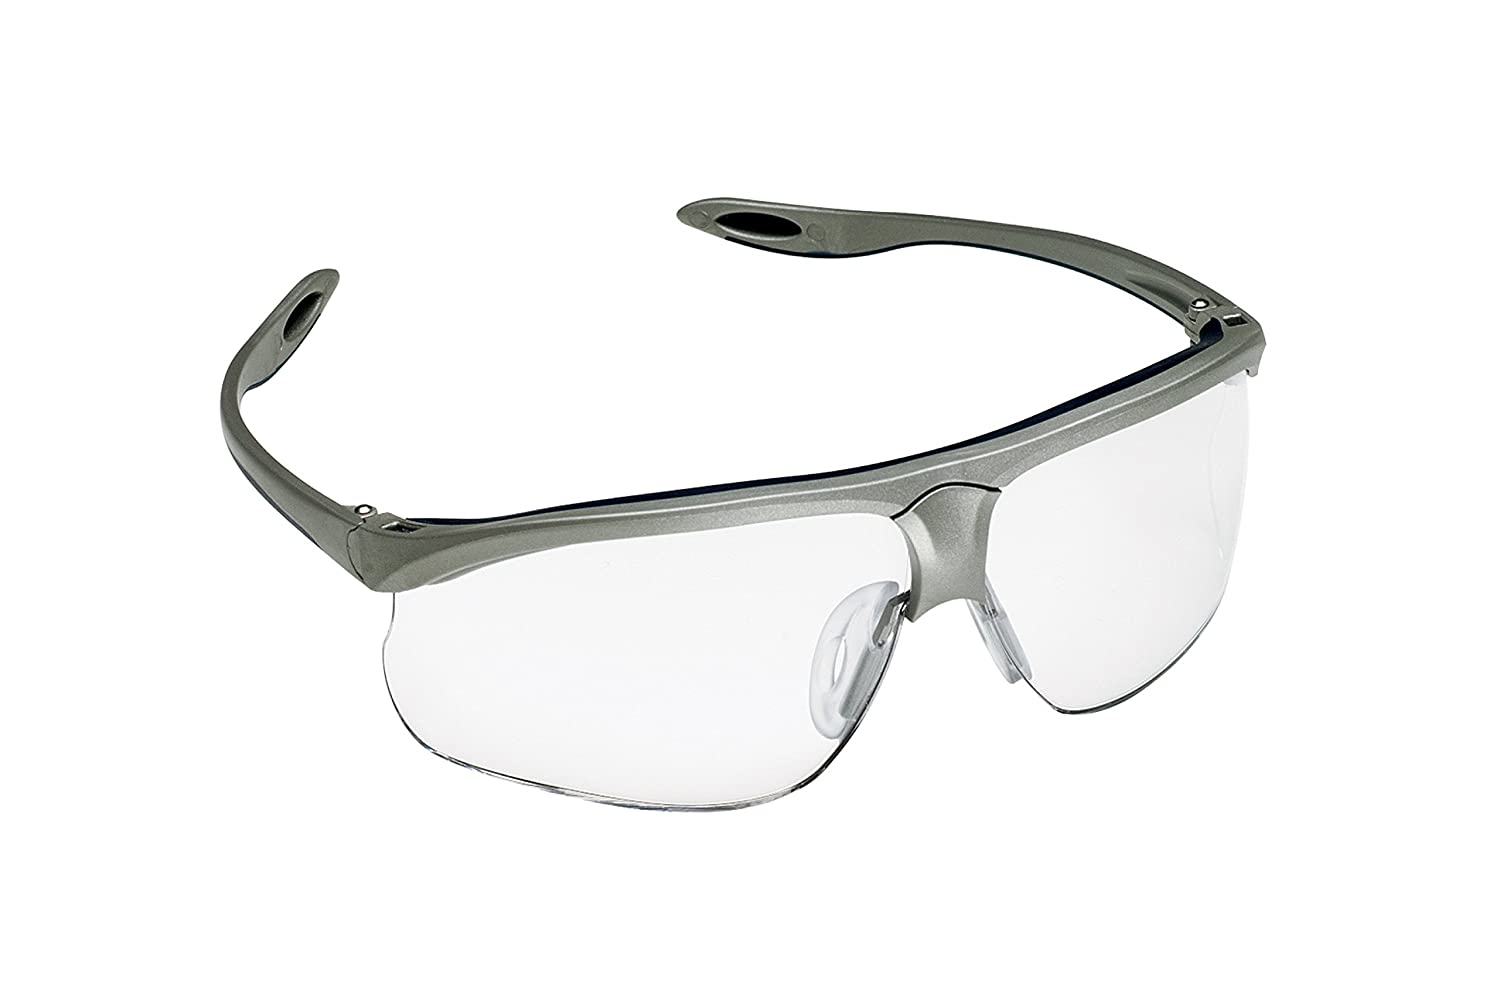 Glass Safety Glasses in Plastic Smoke Gray Safety Frame with Permanent Side Shields, 50mm Eye Size, Clear Glass Lenses by SAFETY GLASS B000LPPMA2